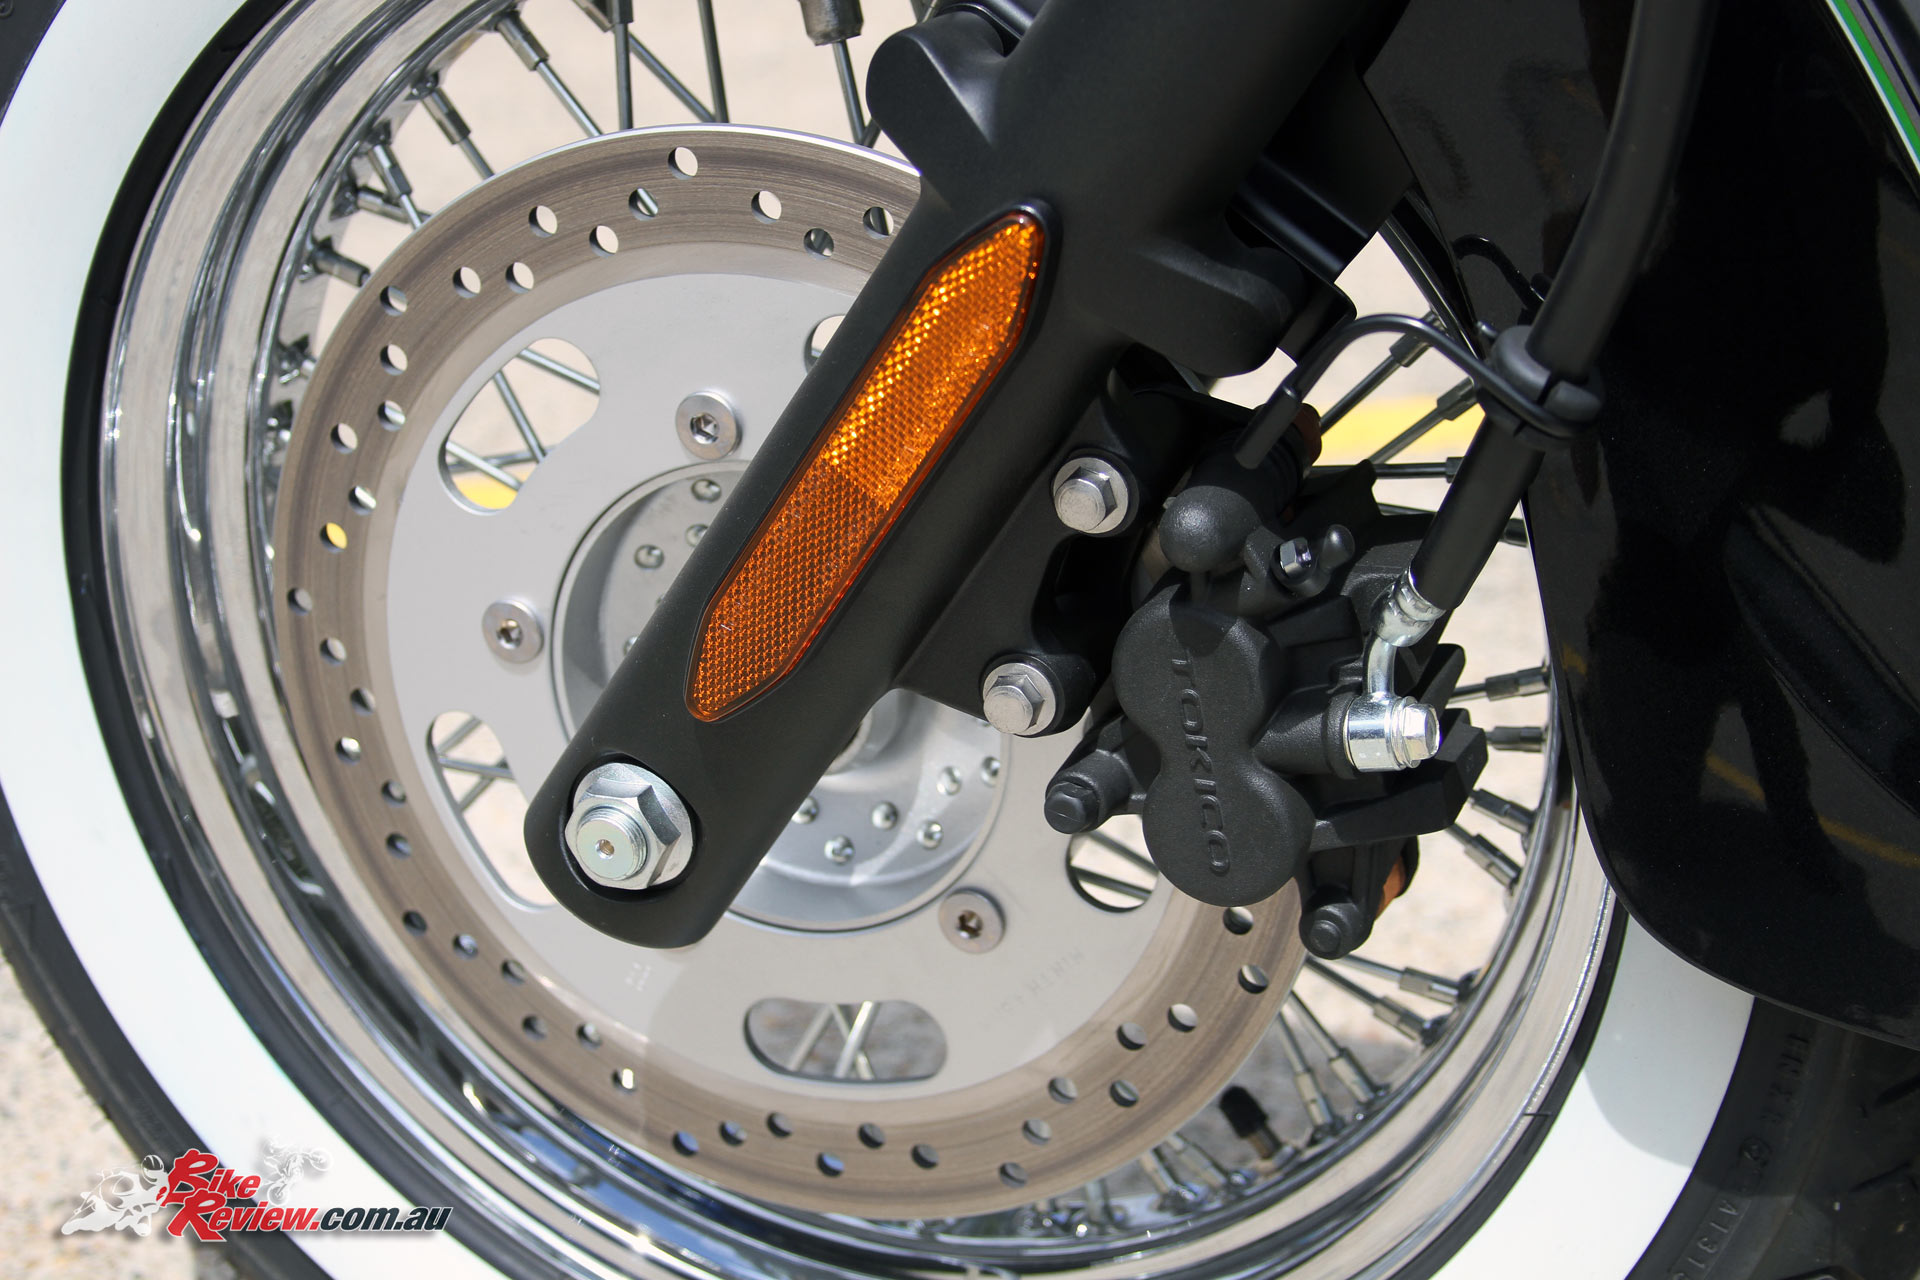 2017 Kawasaki Vulcan 900 Classic - A single two-piston caliper on 300mm rotor provides respectable braking performance for the class